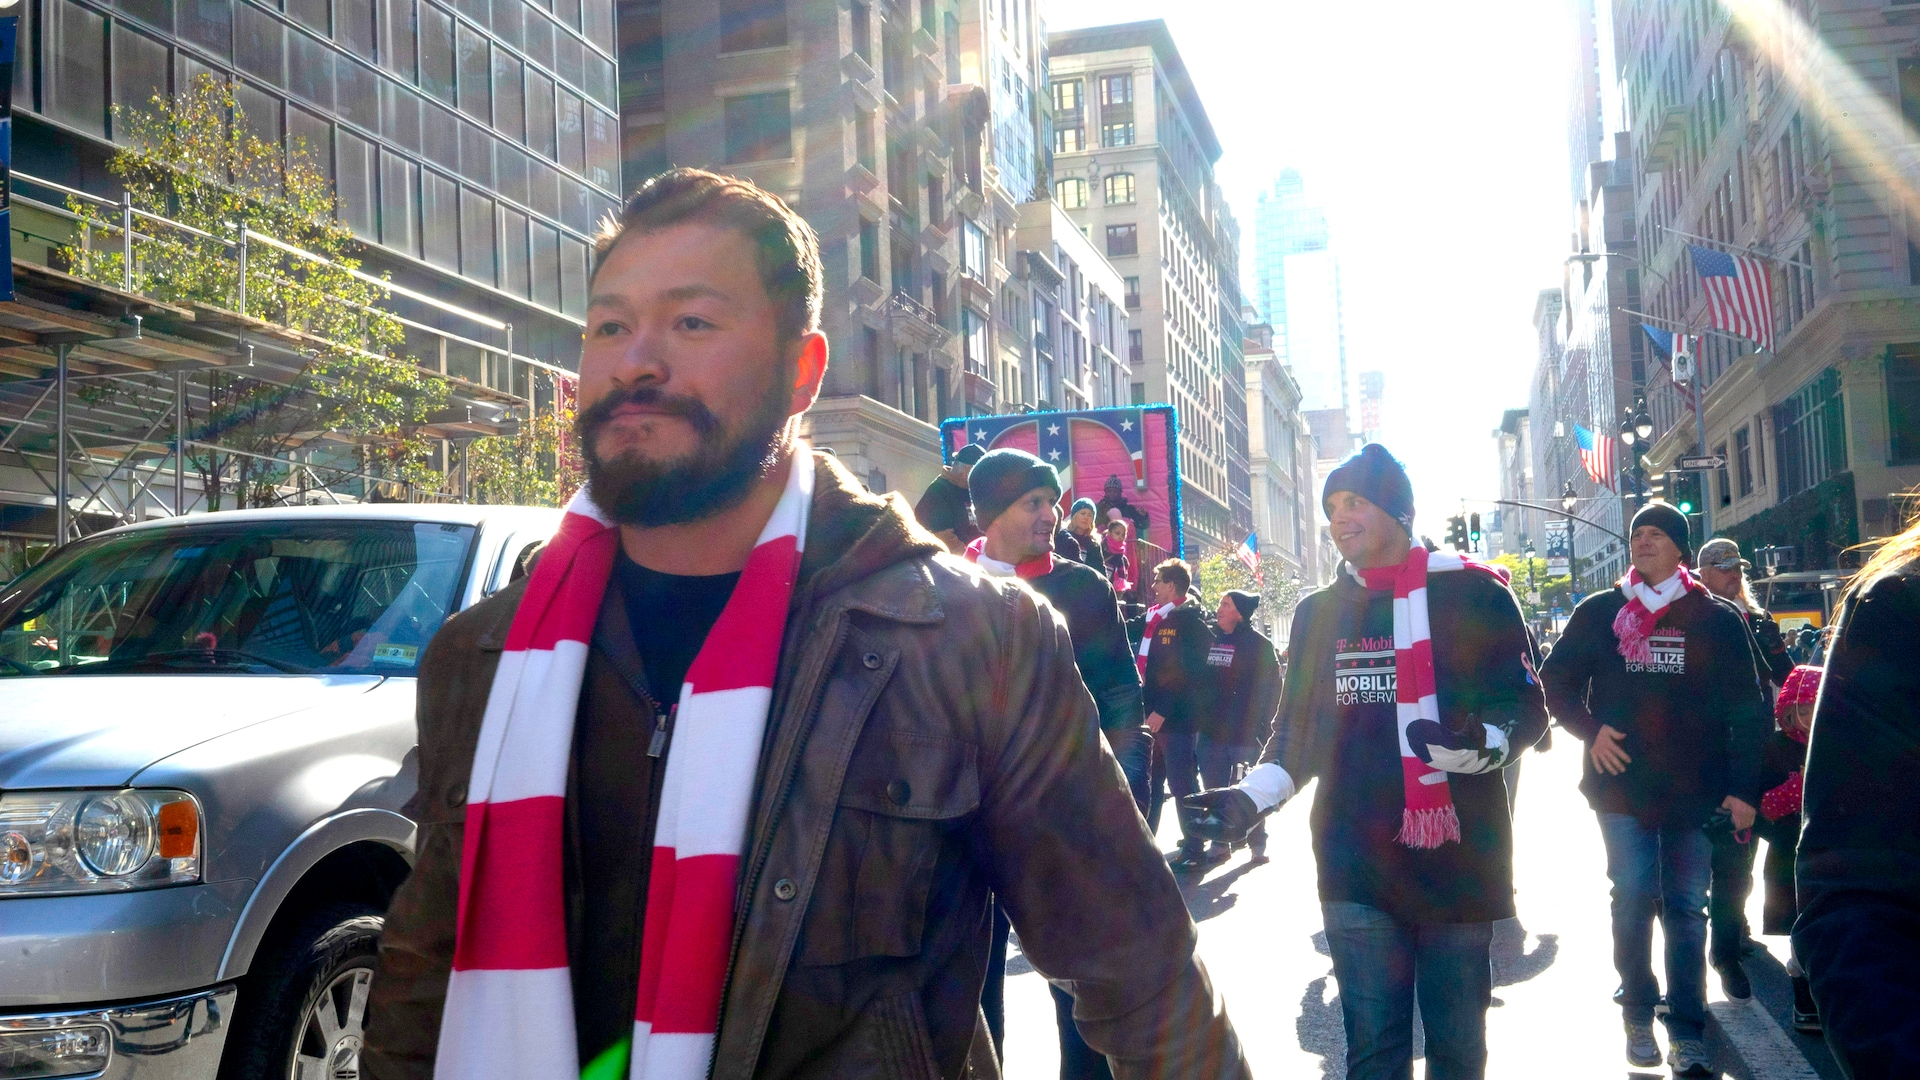 Otto Chan-Arias marching in the 2017 Veterans Day parade in New York City